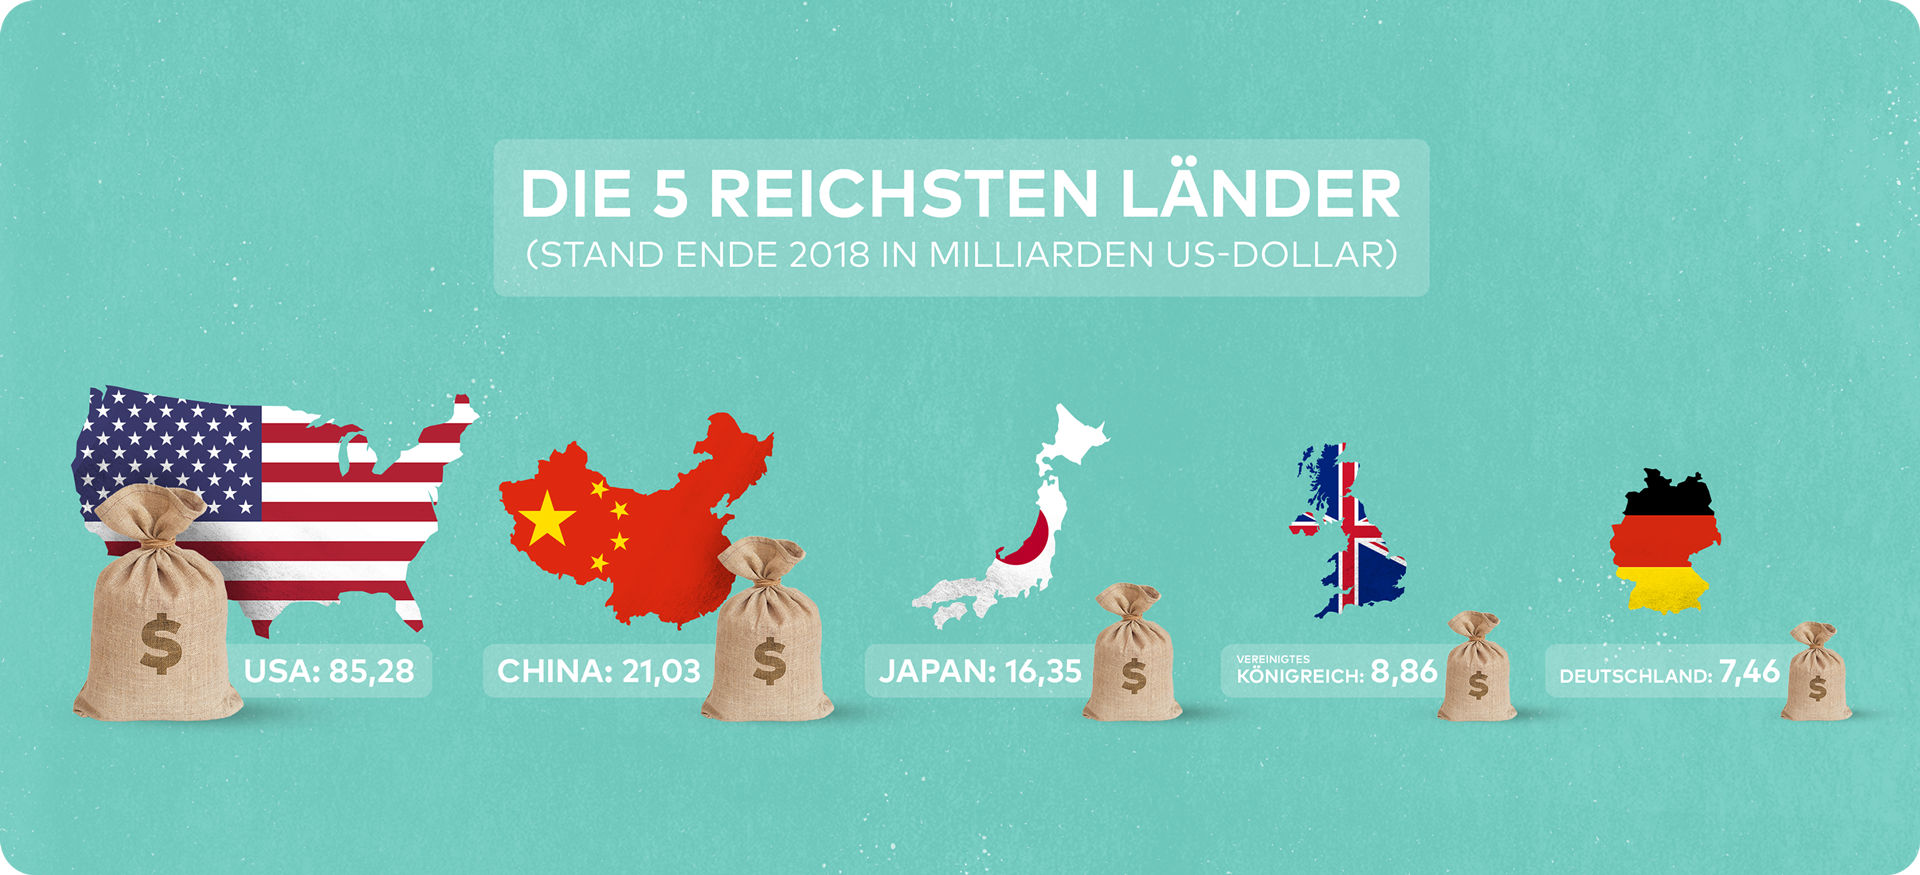 Global-Wealth-Report_Die-reichsten-Laender